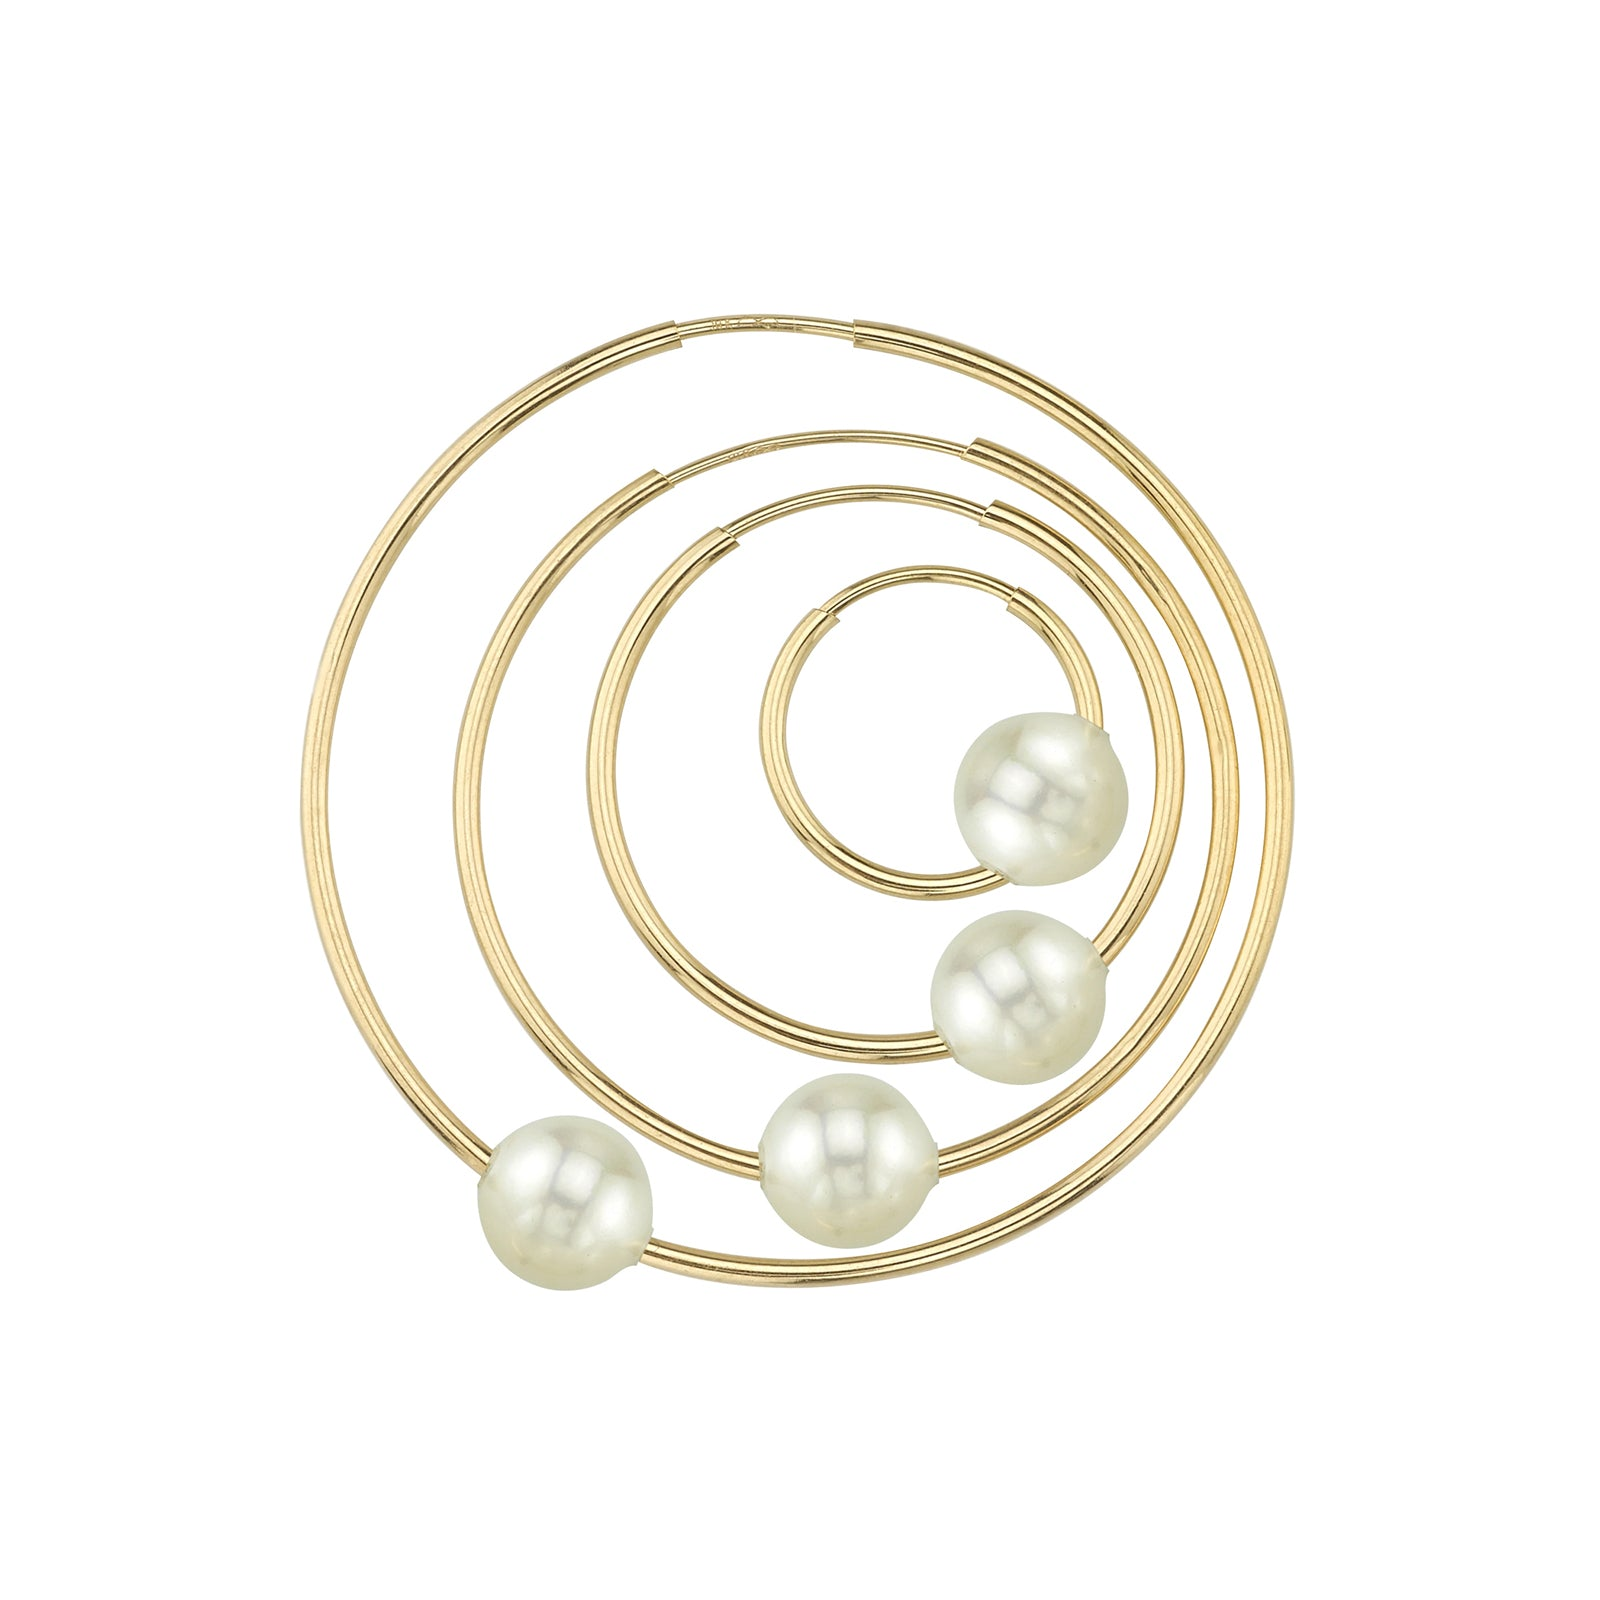 Gabriela Artigas & Company Cosmos Pearl Hoop - Yellow Gold 12mm - Earrings - Broken English Jewelry